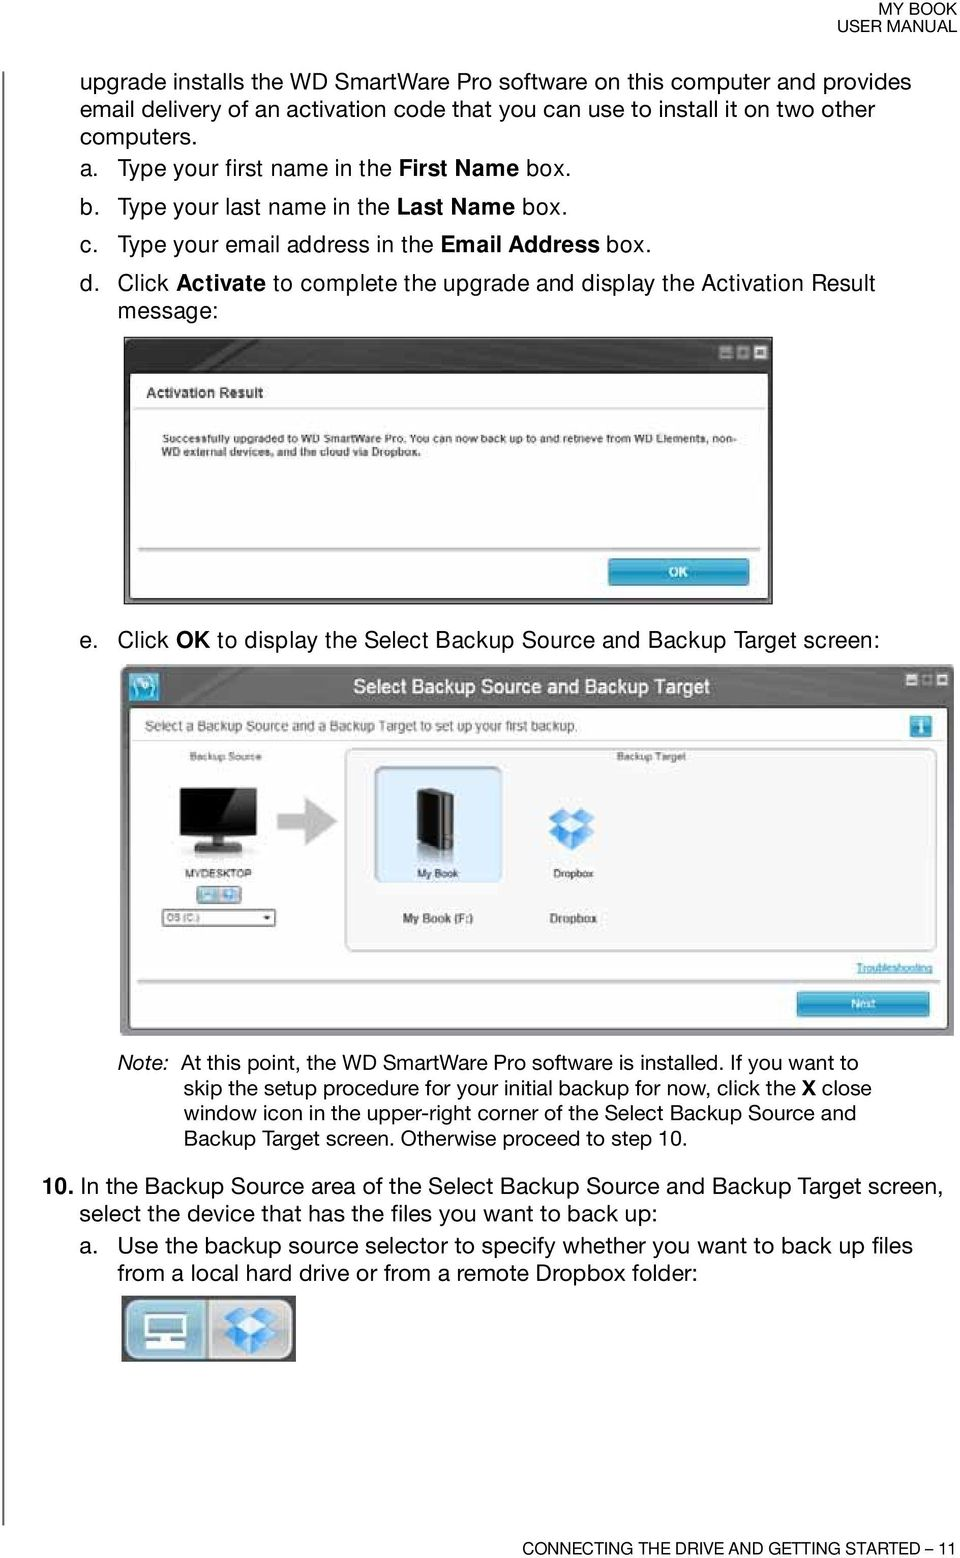 Click OK to display the Select Backup Source and Backup Target screen: Note: At this point, the WD SmartWare Pro software is installed.